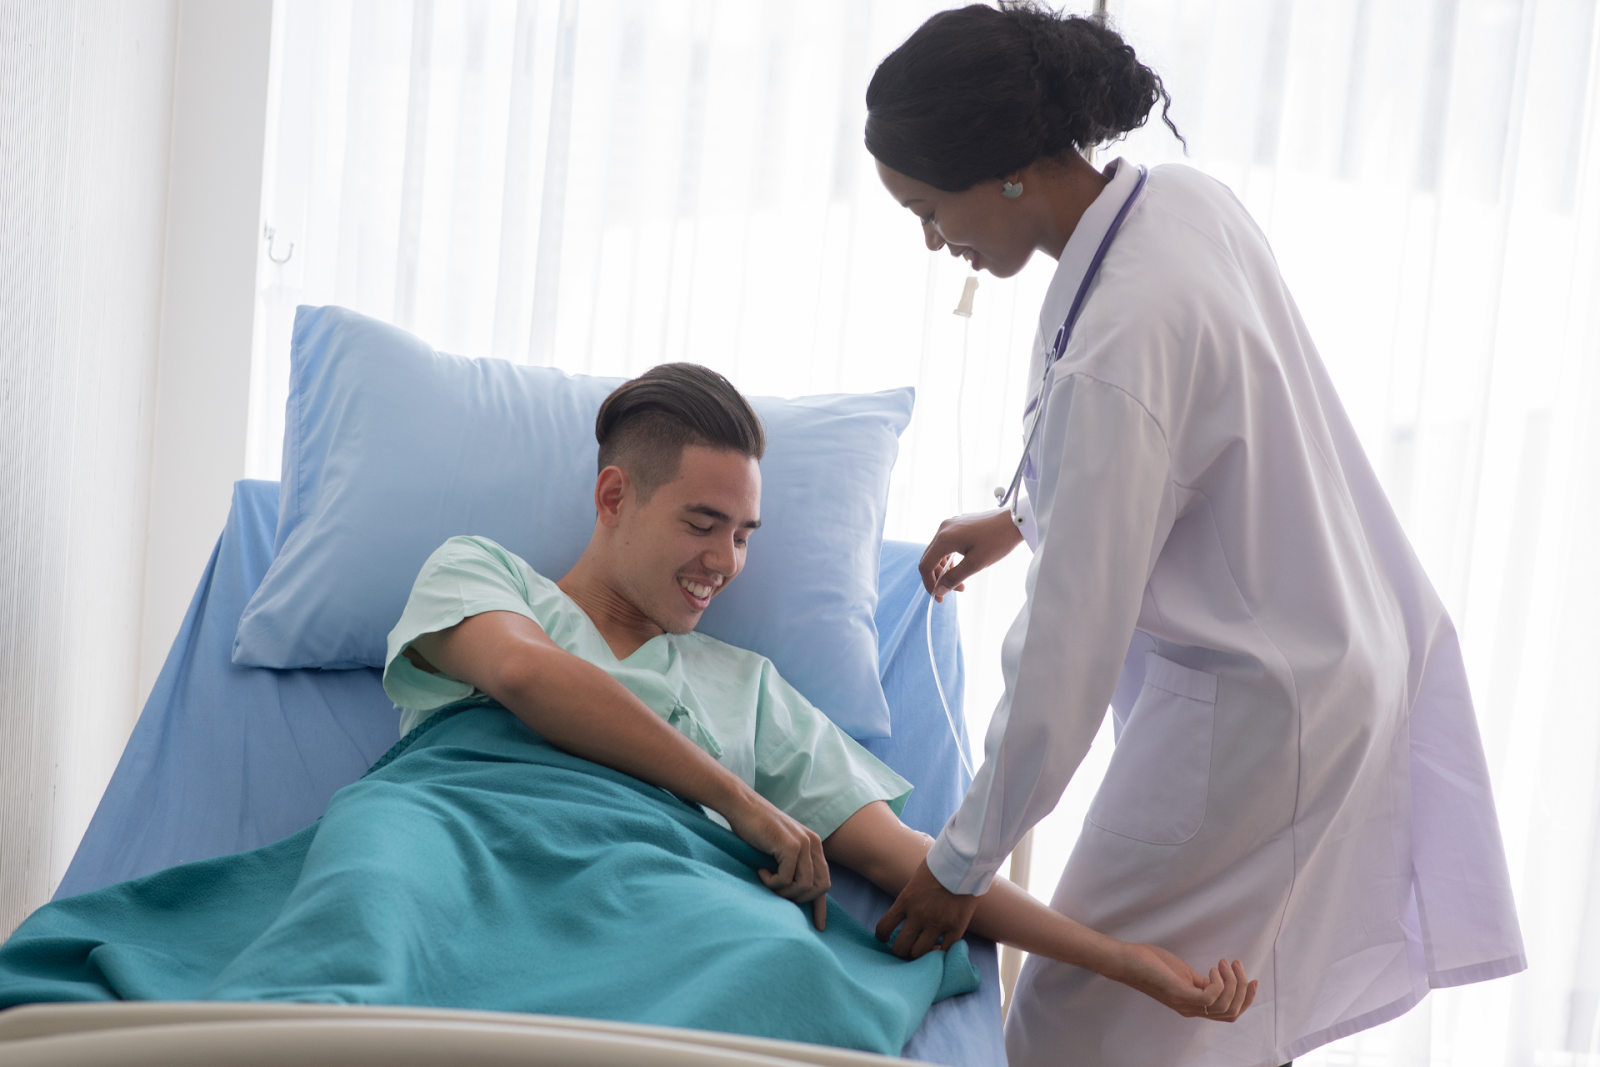 Female Doctor with Male Patient in Hospital